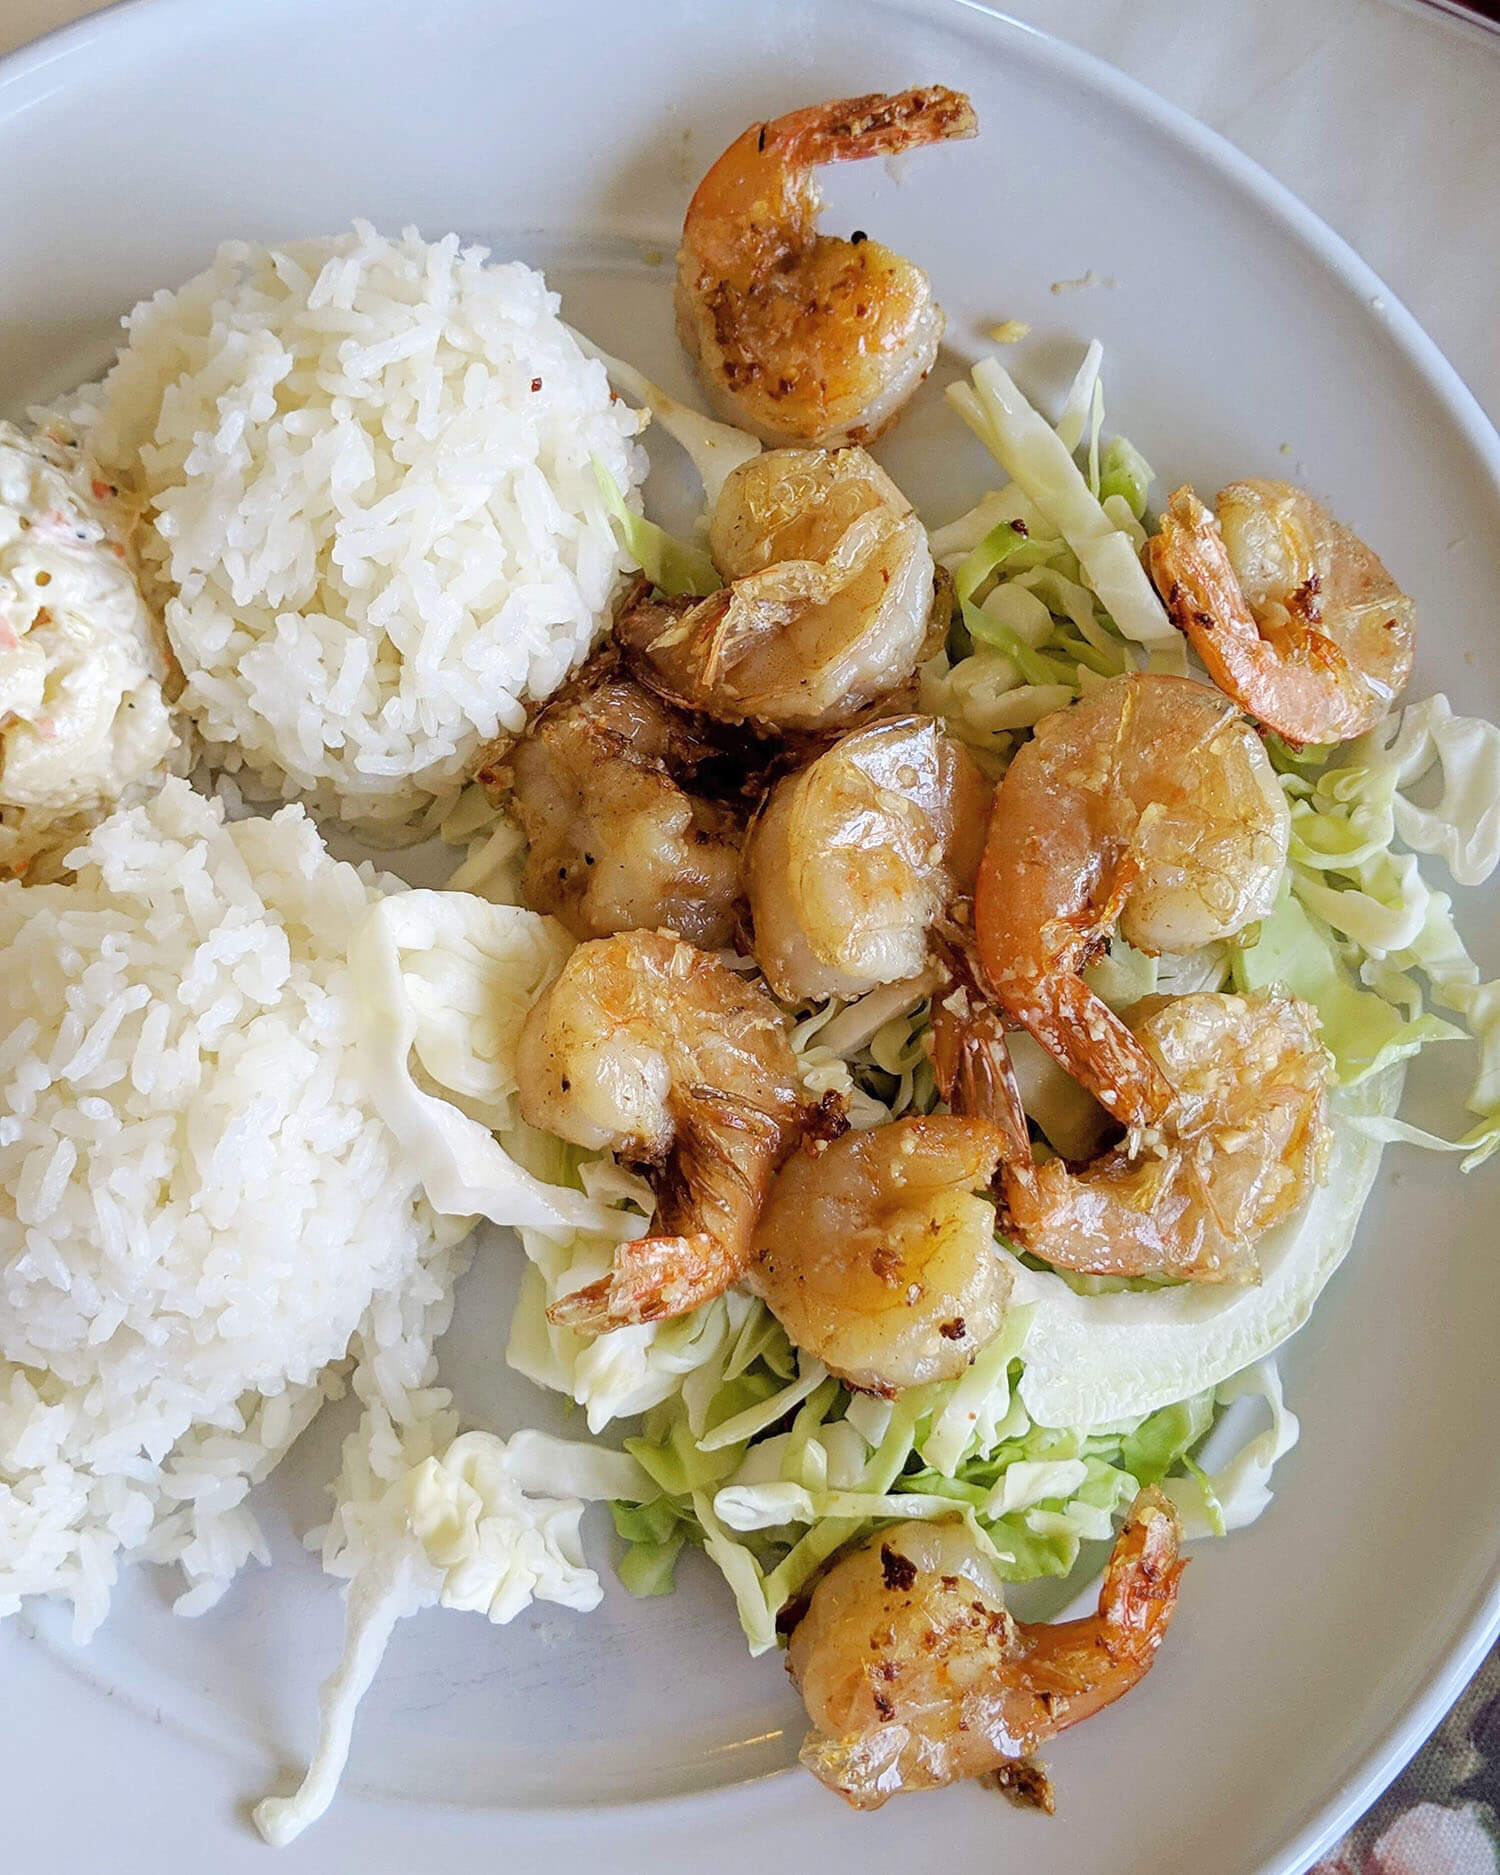 Garlic Shrimp Plate Lunch Ono Kau Kau Lahaina Maui Travel Food Hawaii